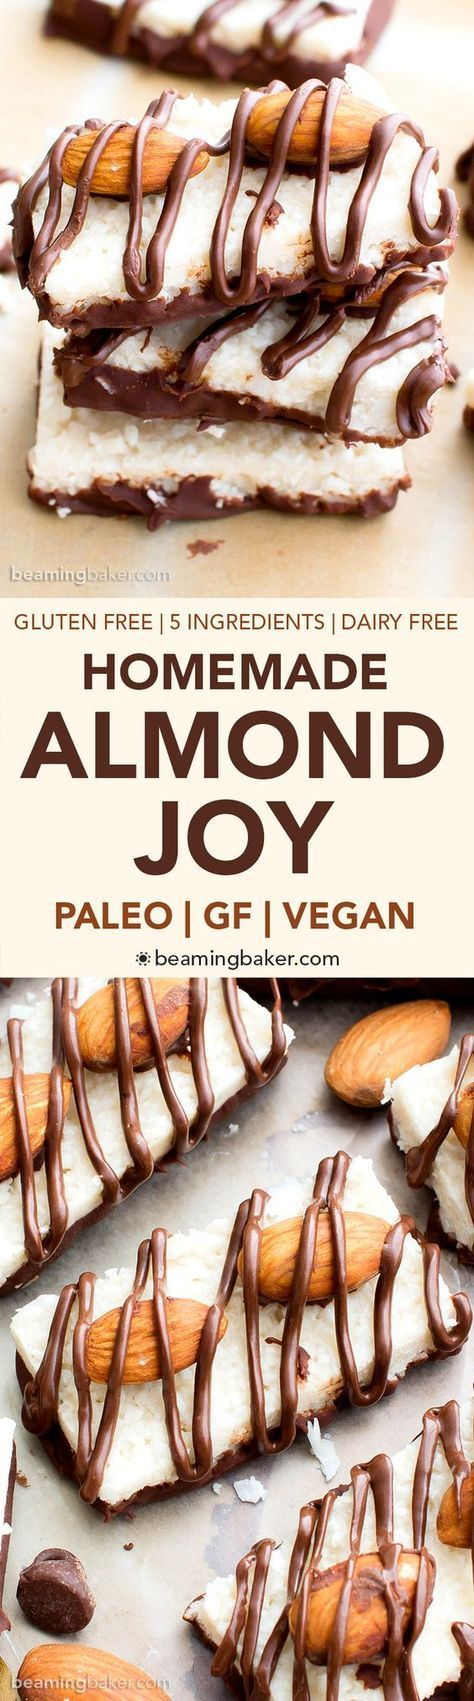 Paleo Almond Joy - 5-ingredient recipe for deliciously satisfying homemade chocolate, almond, and coconut candy. Vegan, dairy free, and gluten free. | Beaming Baker(Chocolate Bars Almond Joy)